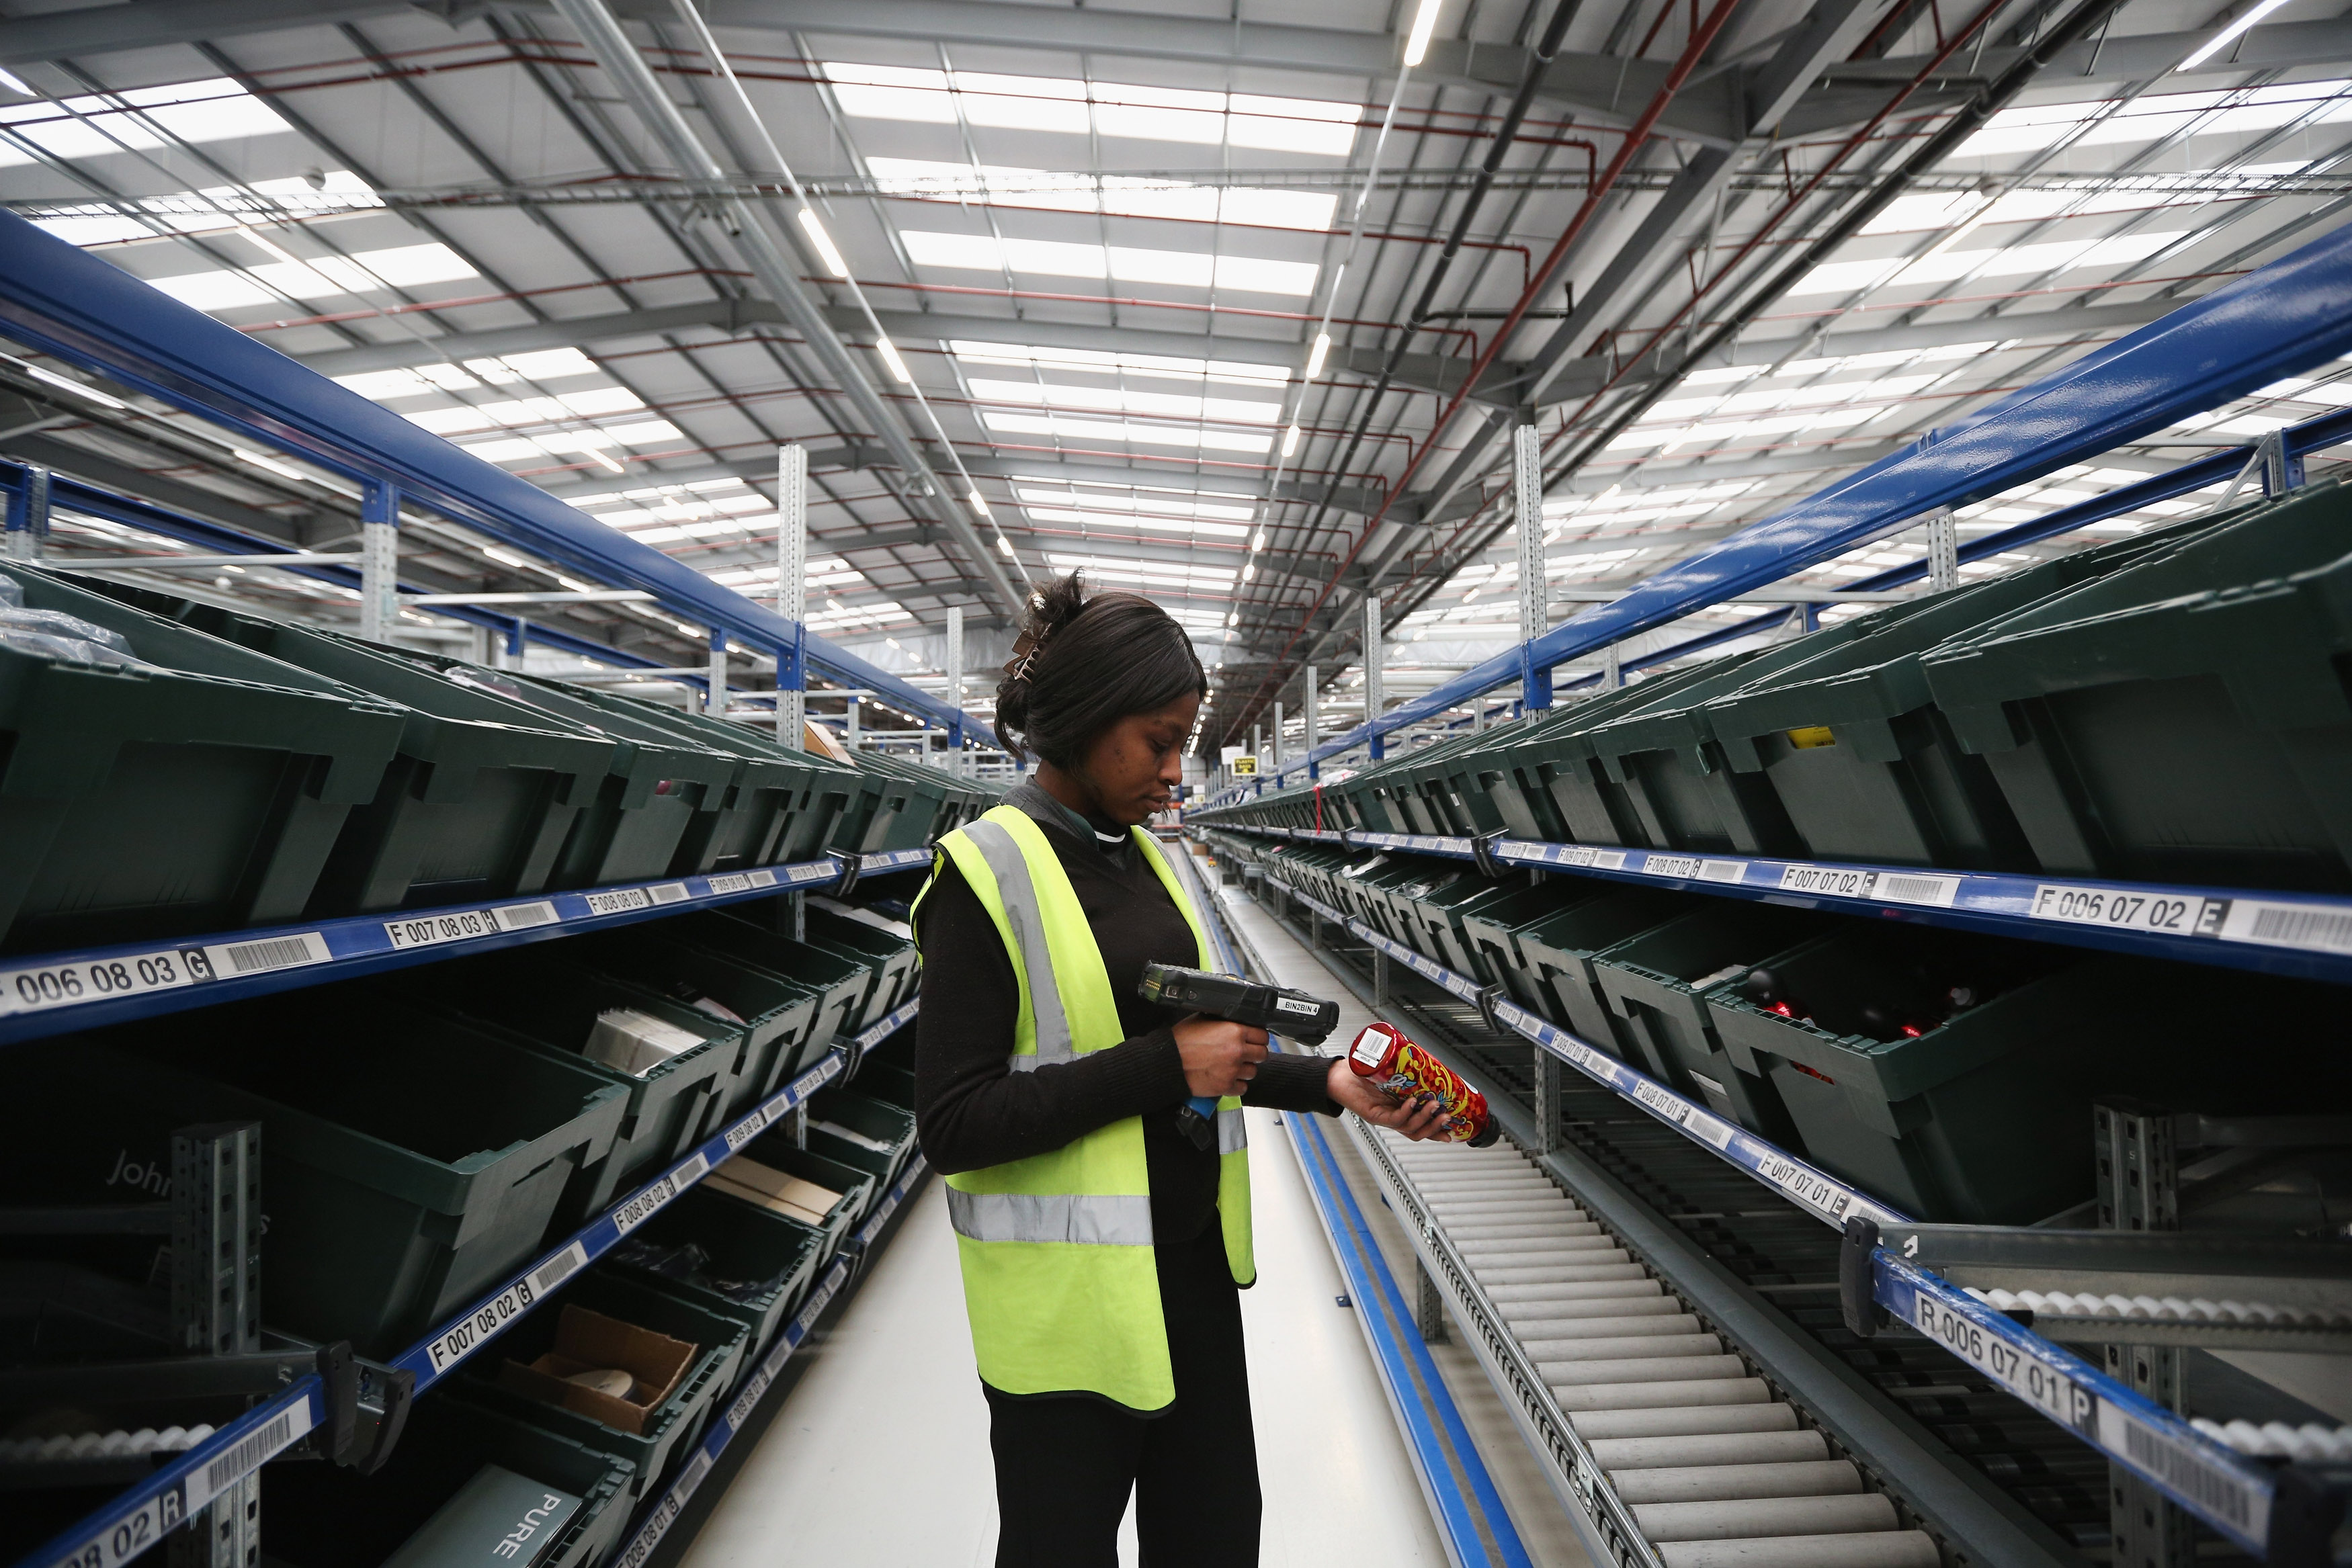 Why Walmart wants robots, not workers, stocking shelves